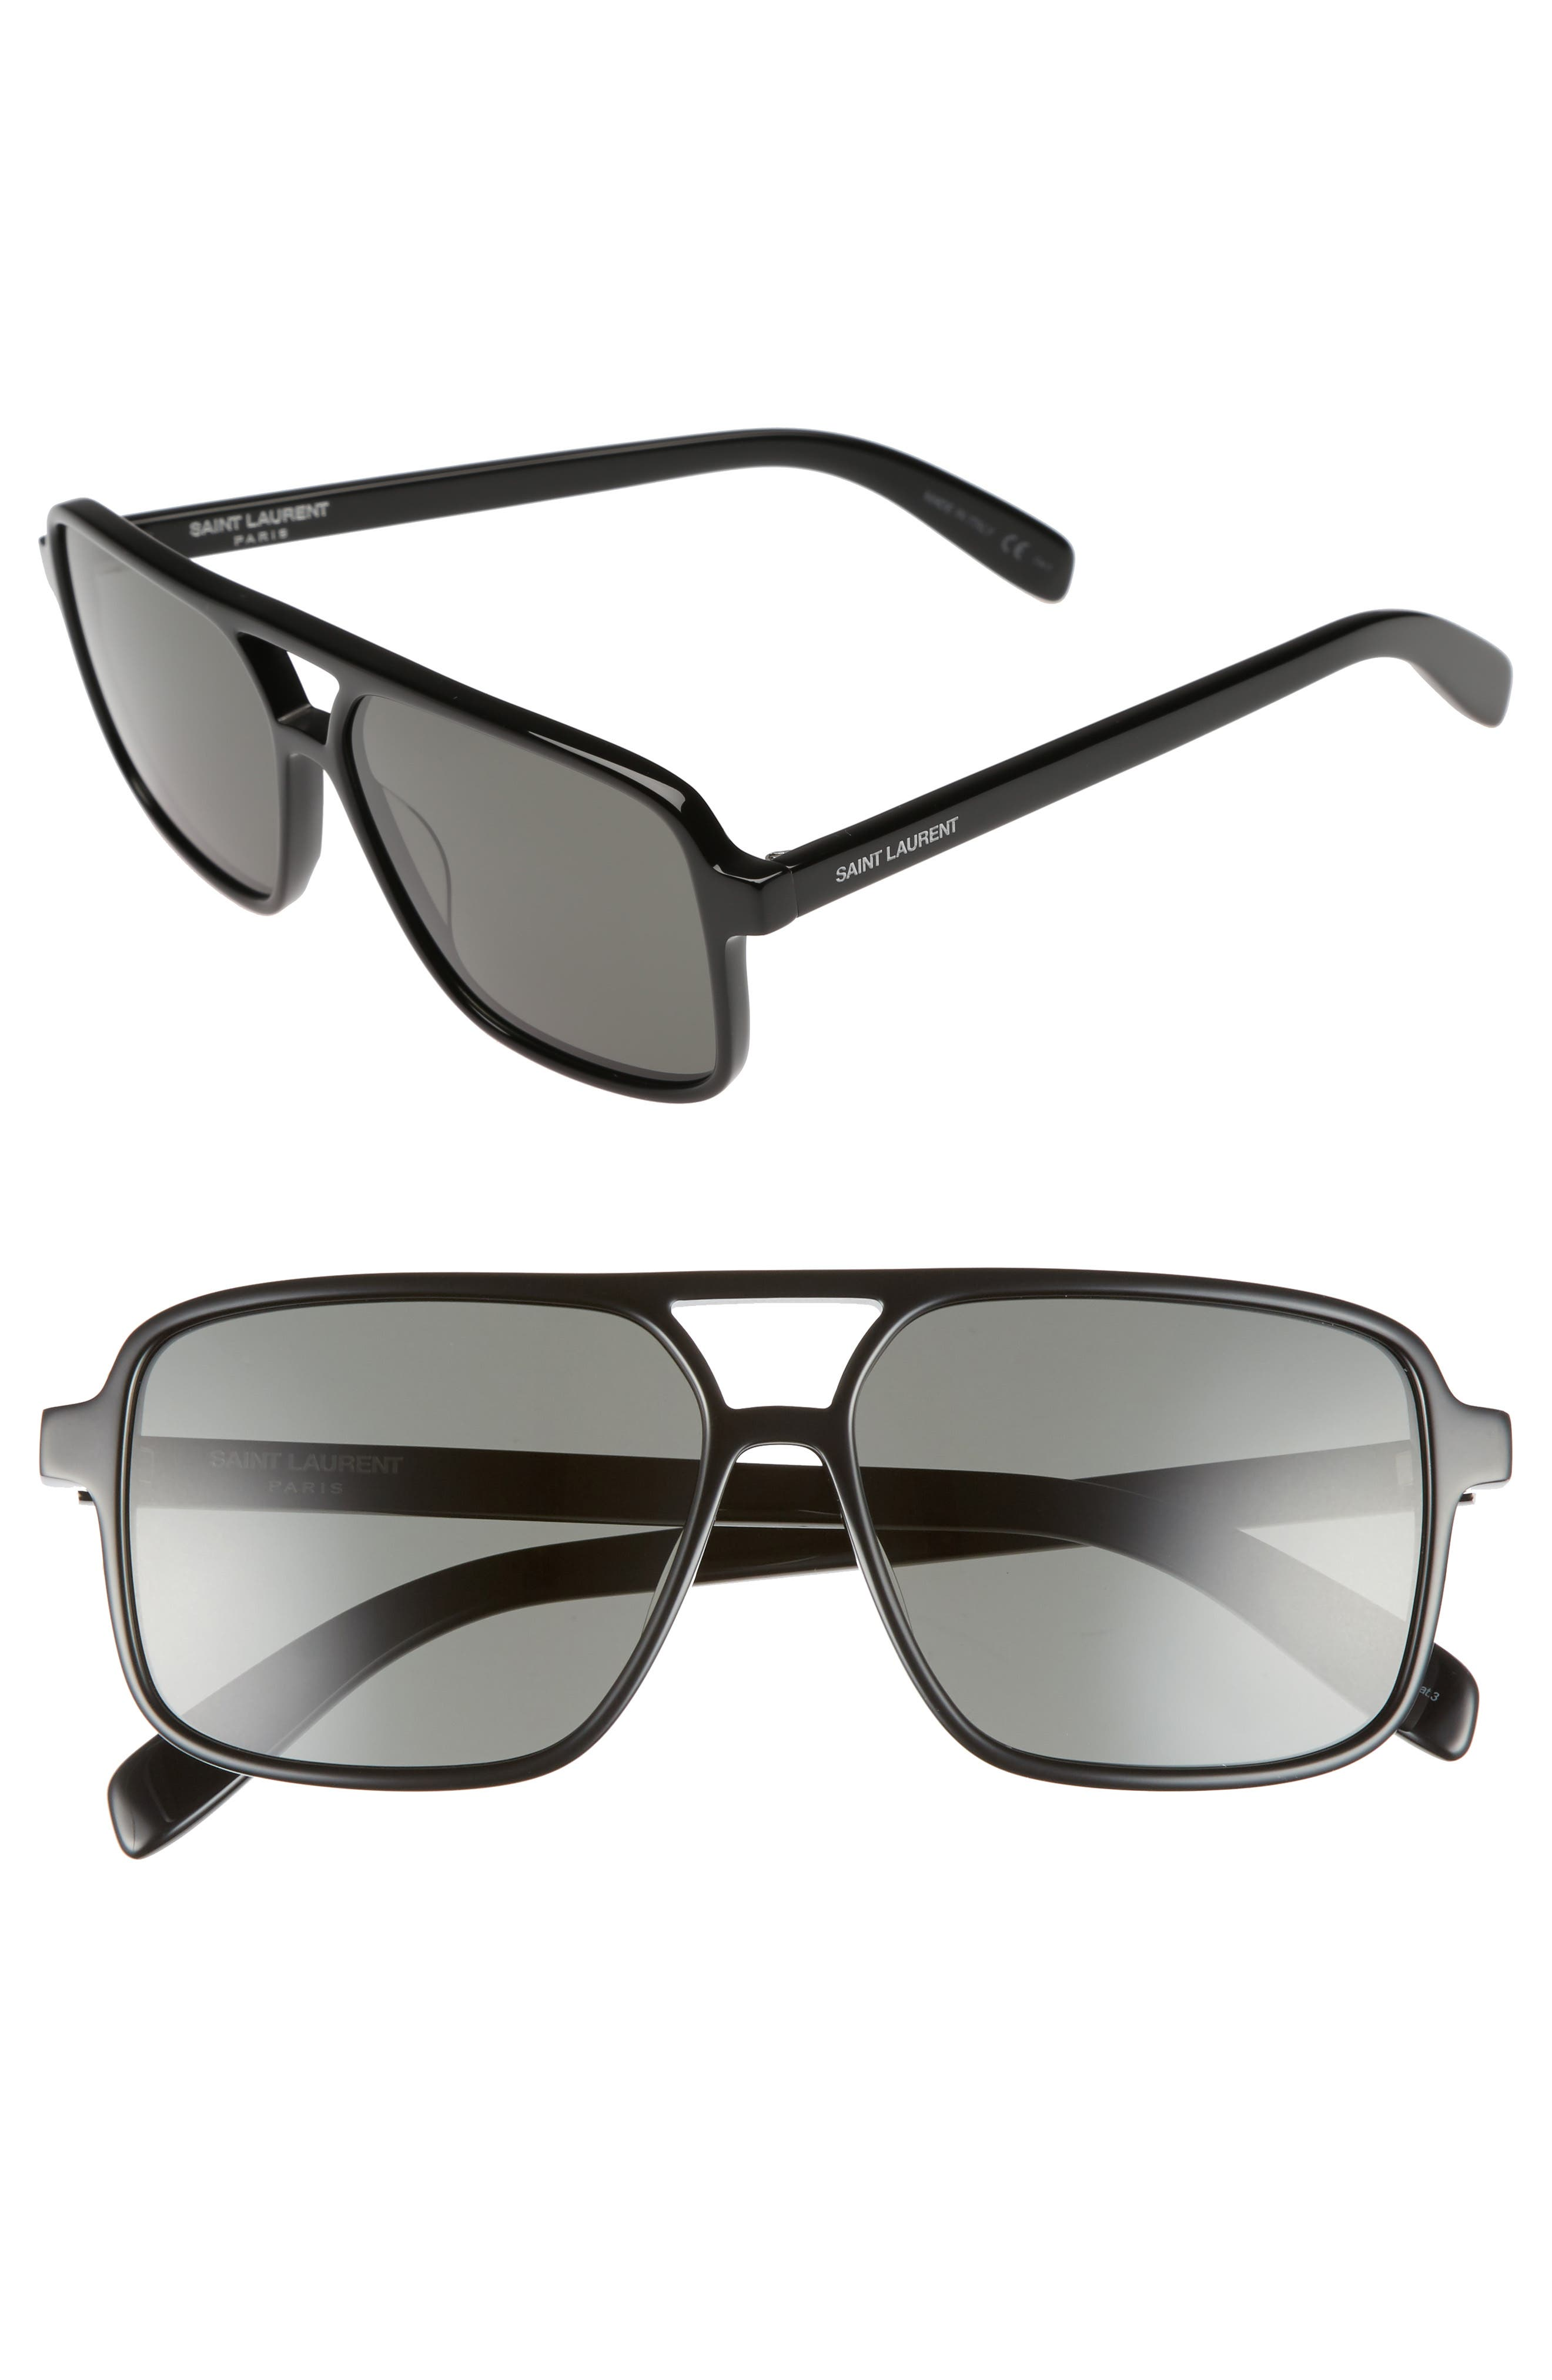 Main Image - Saint Laurent 58mm Square Navigator Sunglasses